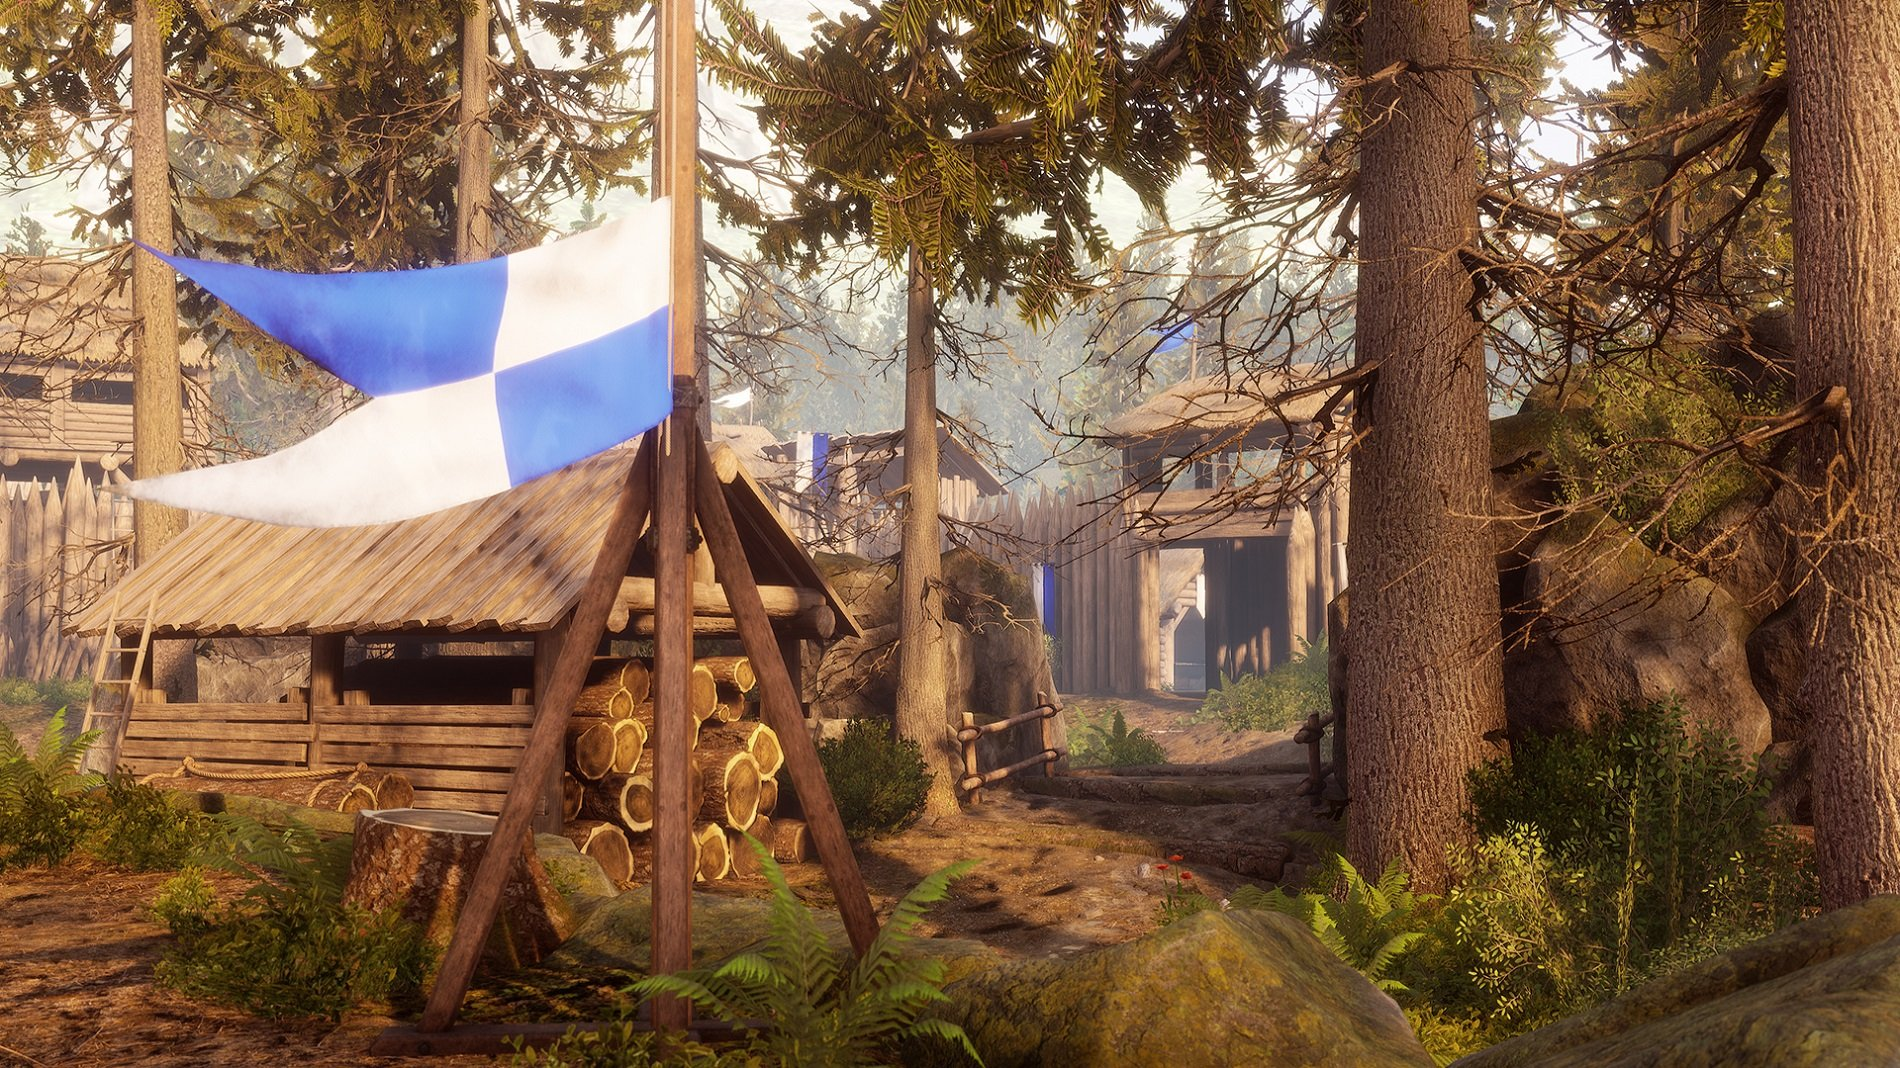 To build a Ballista in Mordhau, you'll either need to select the Engineer class or equip a Toolbox to your fighter's loadout. After scouting a safe spot, press R to cycle through building options and select Ballista to begin the build process. To speed up your build, you can equip a Blacksmith's Hammer and put points in the Smith perk.